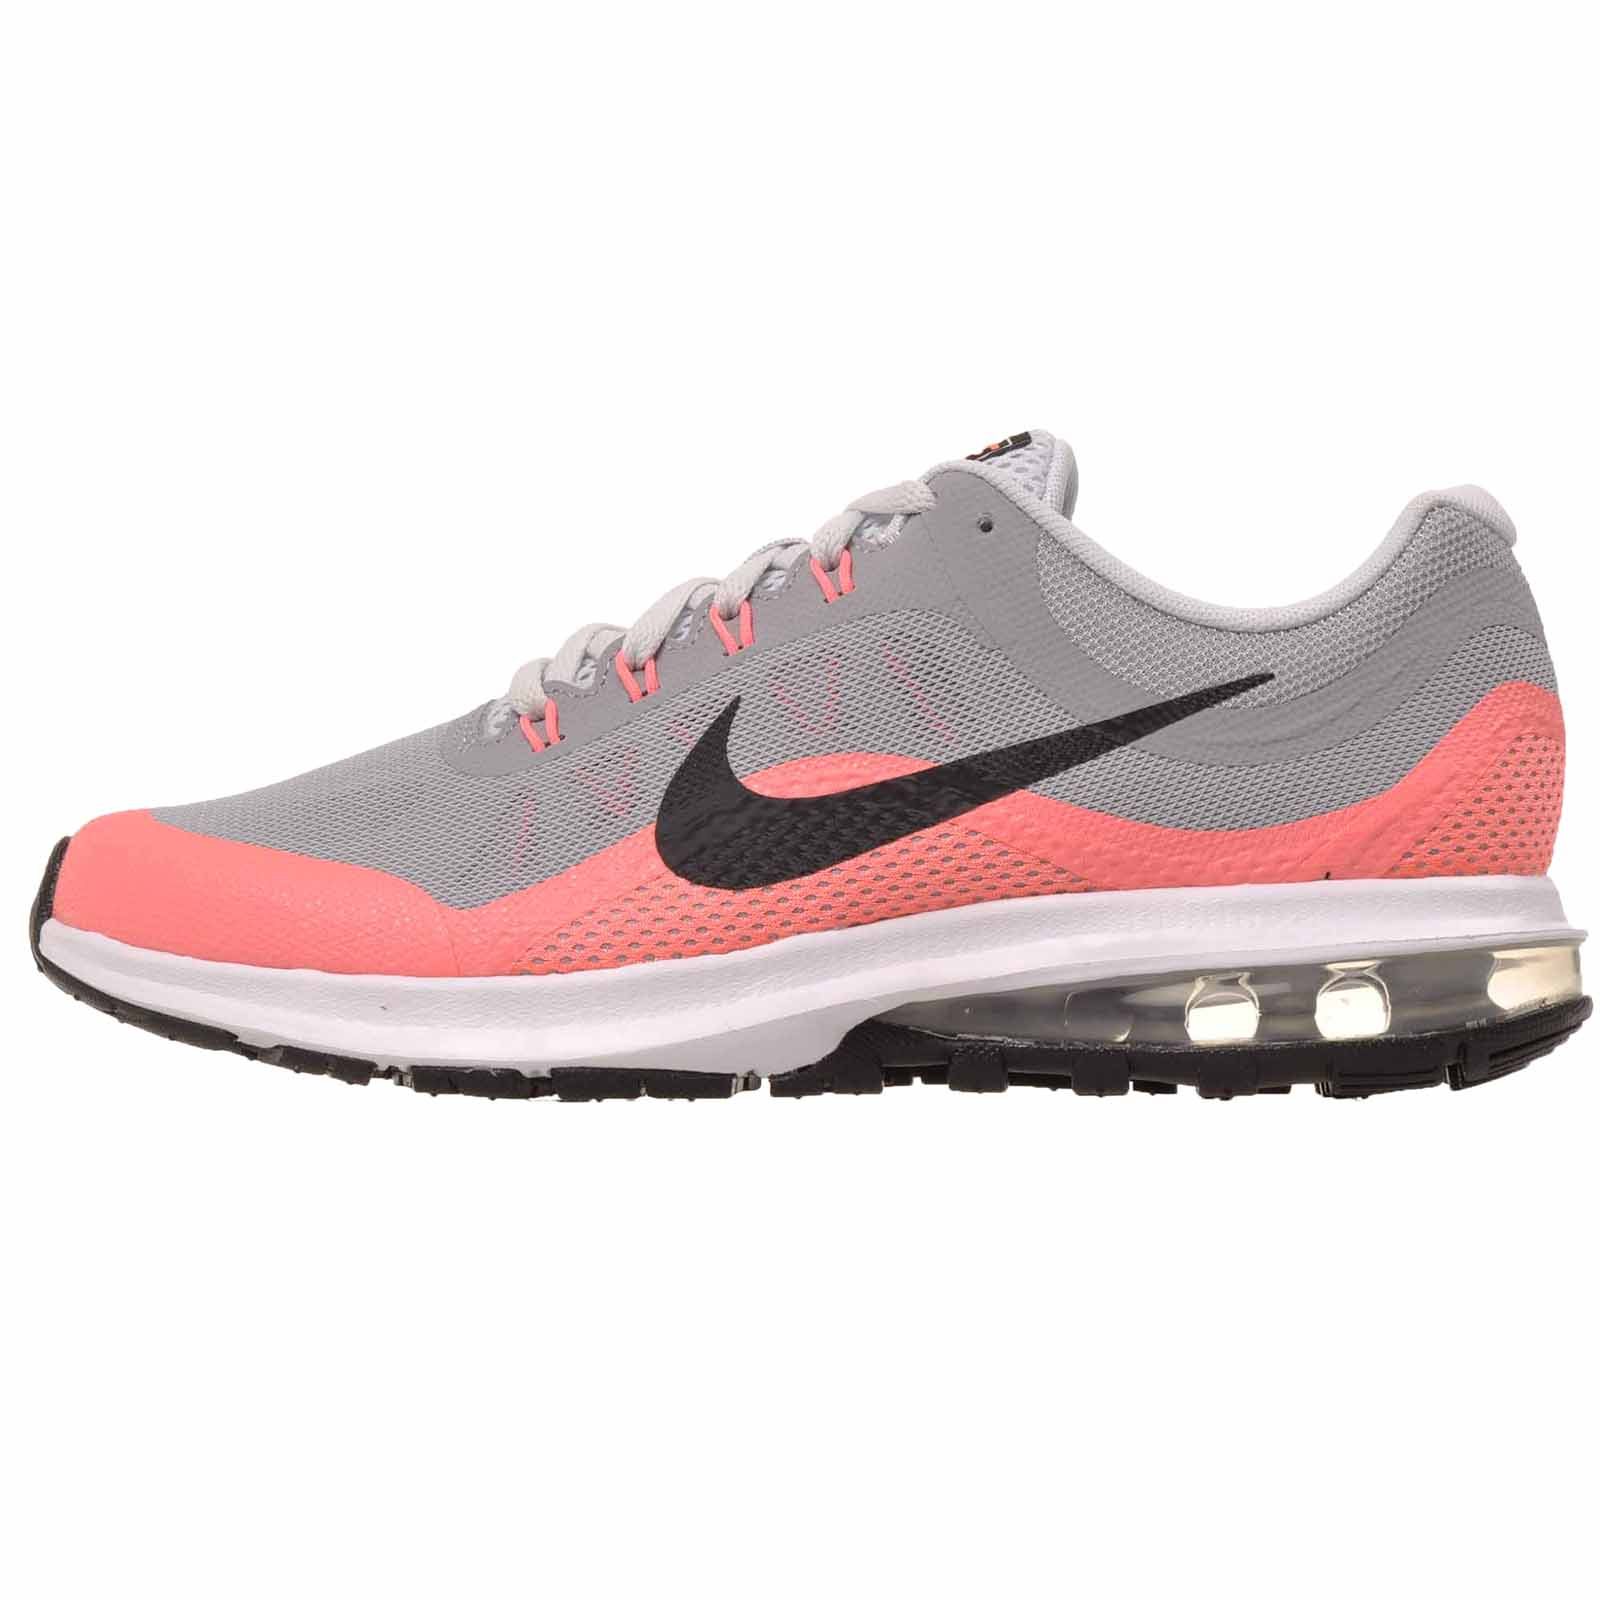 best authentic 3faff 44387 Details about Nike Air Max Dynasty 2 GS Running Kids Youth Shoes Grey  859577-003